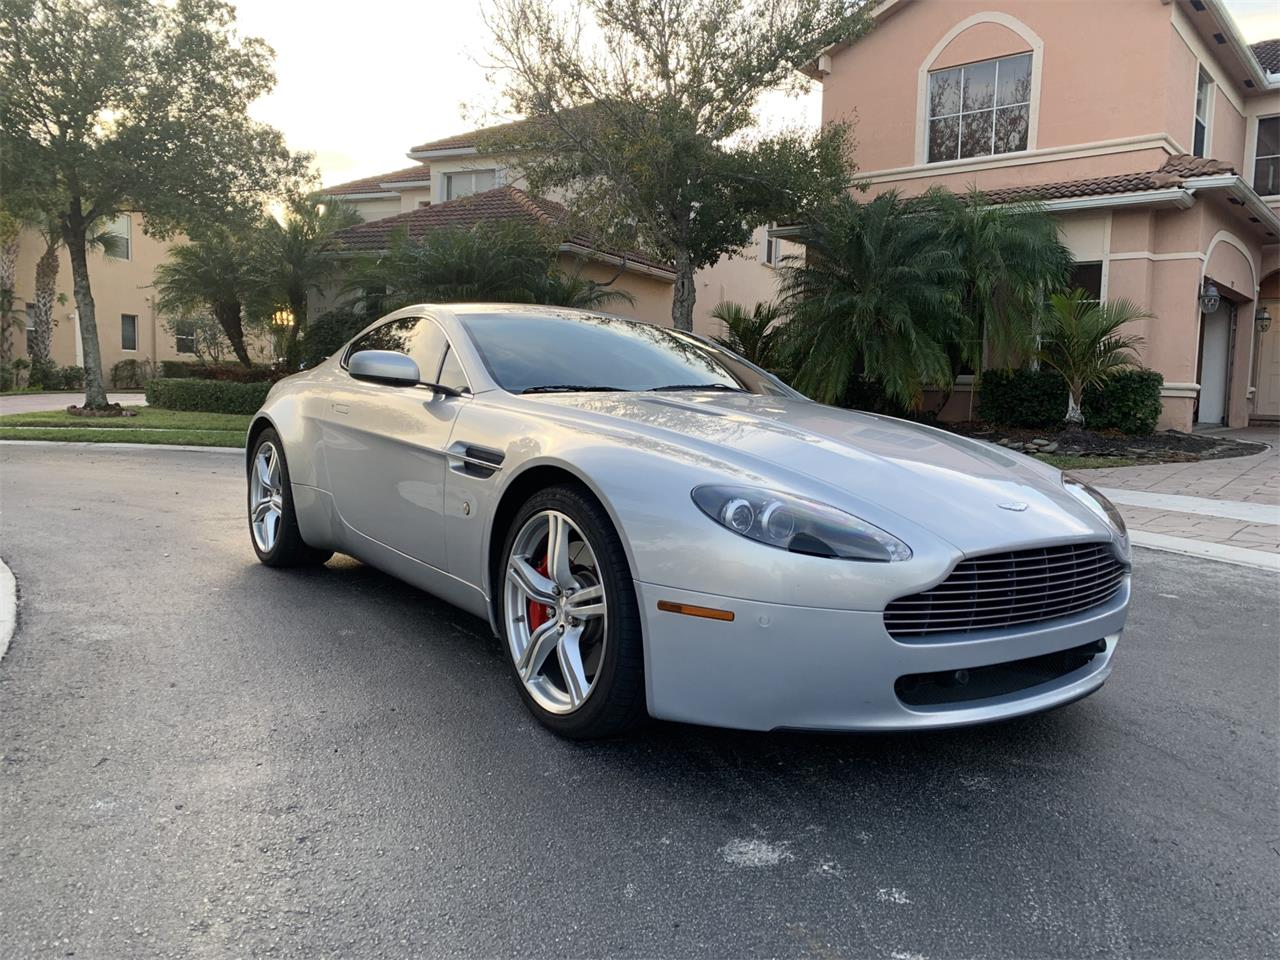 Large Picture of 2009 Vantage Auction Vehicle Offered by Bring A Trailer - PWRX